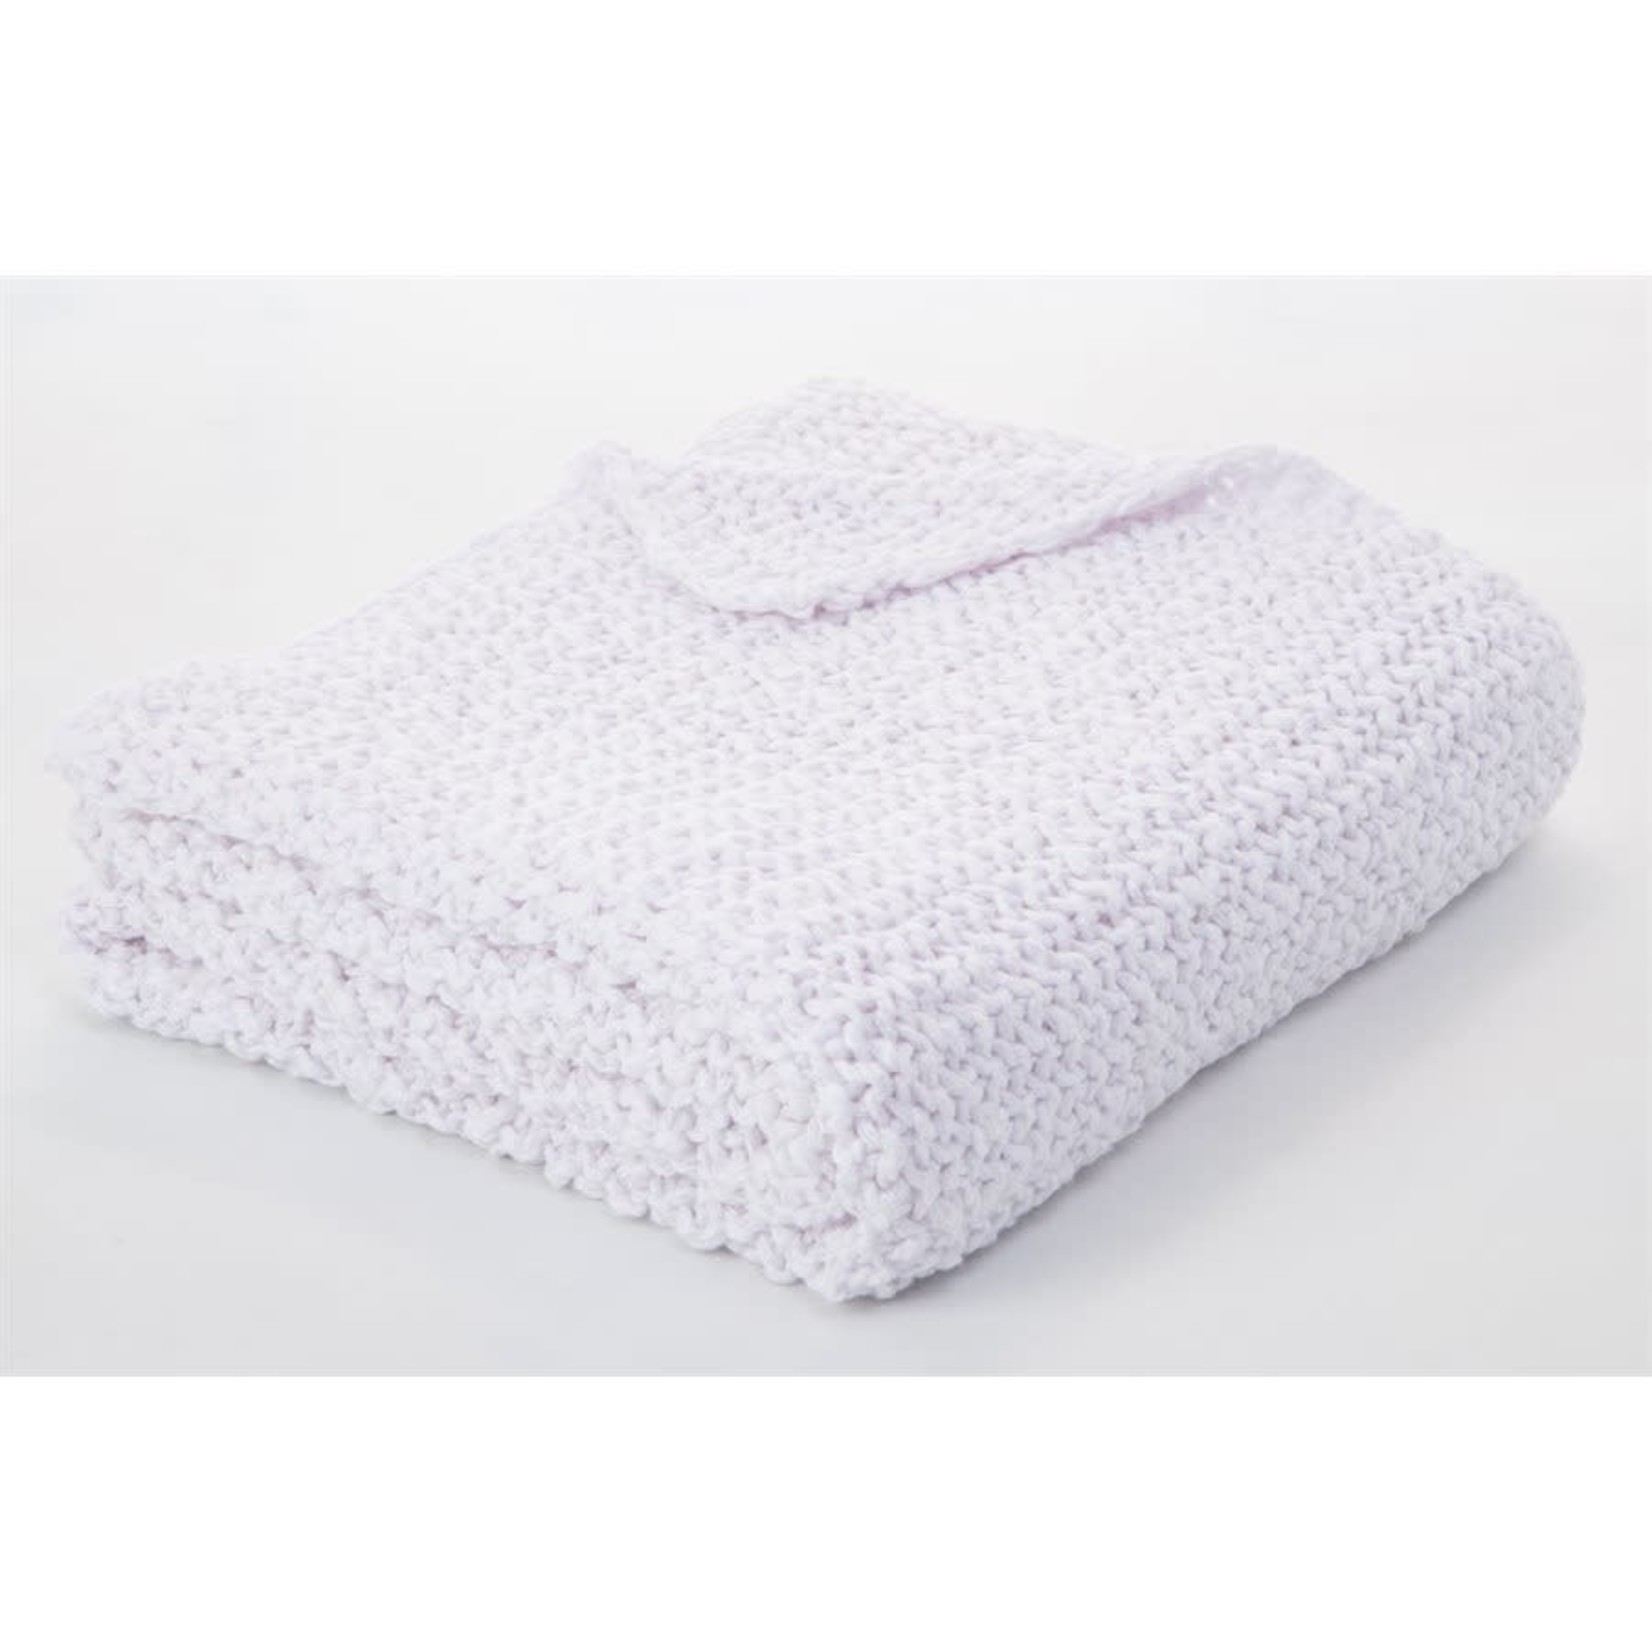 Bulky White Knitted Throw